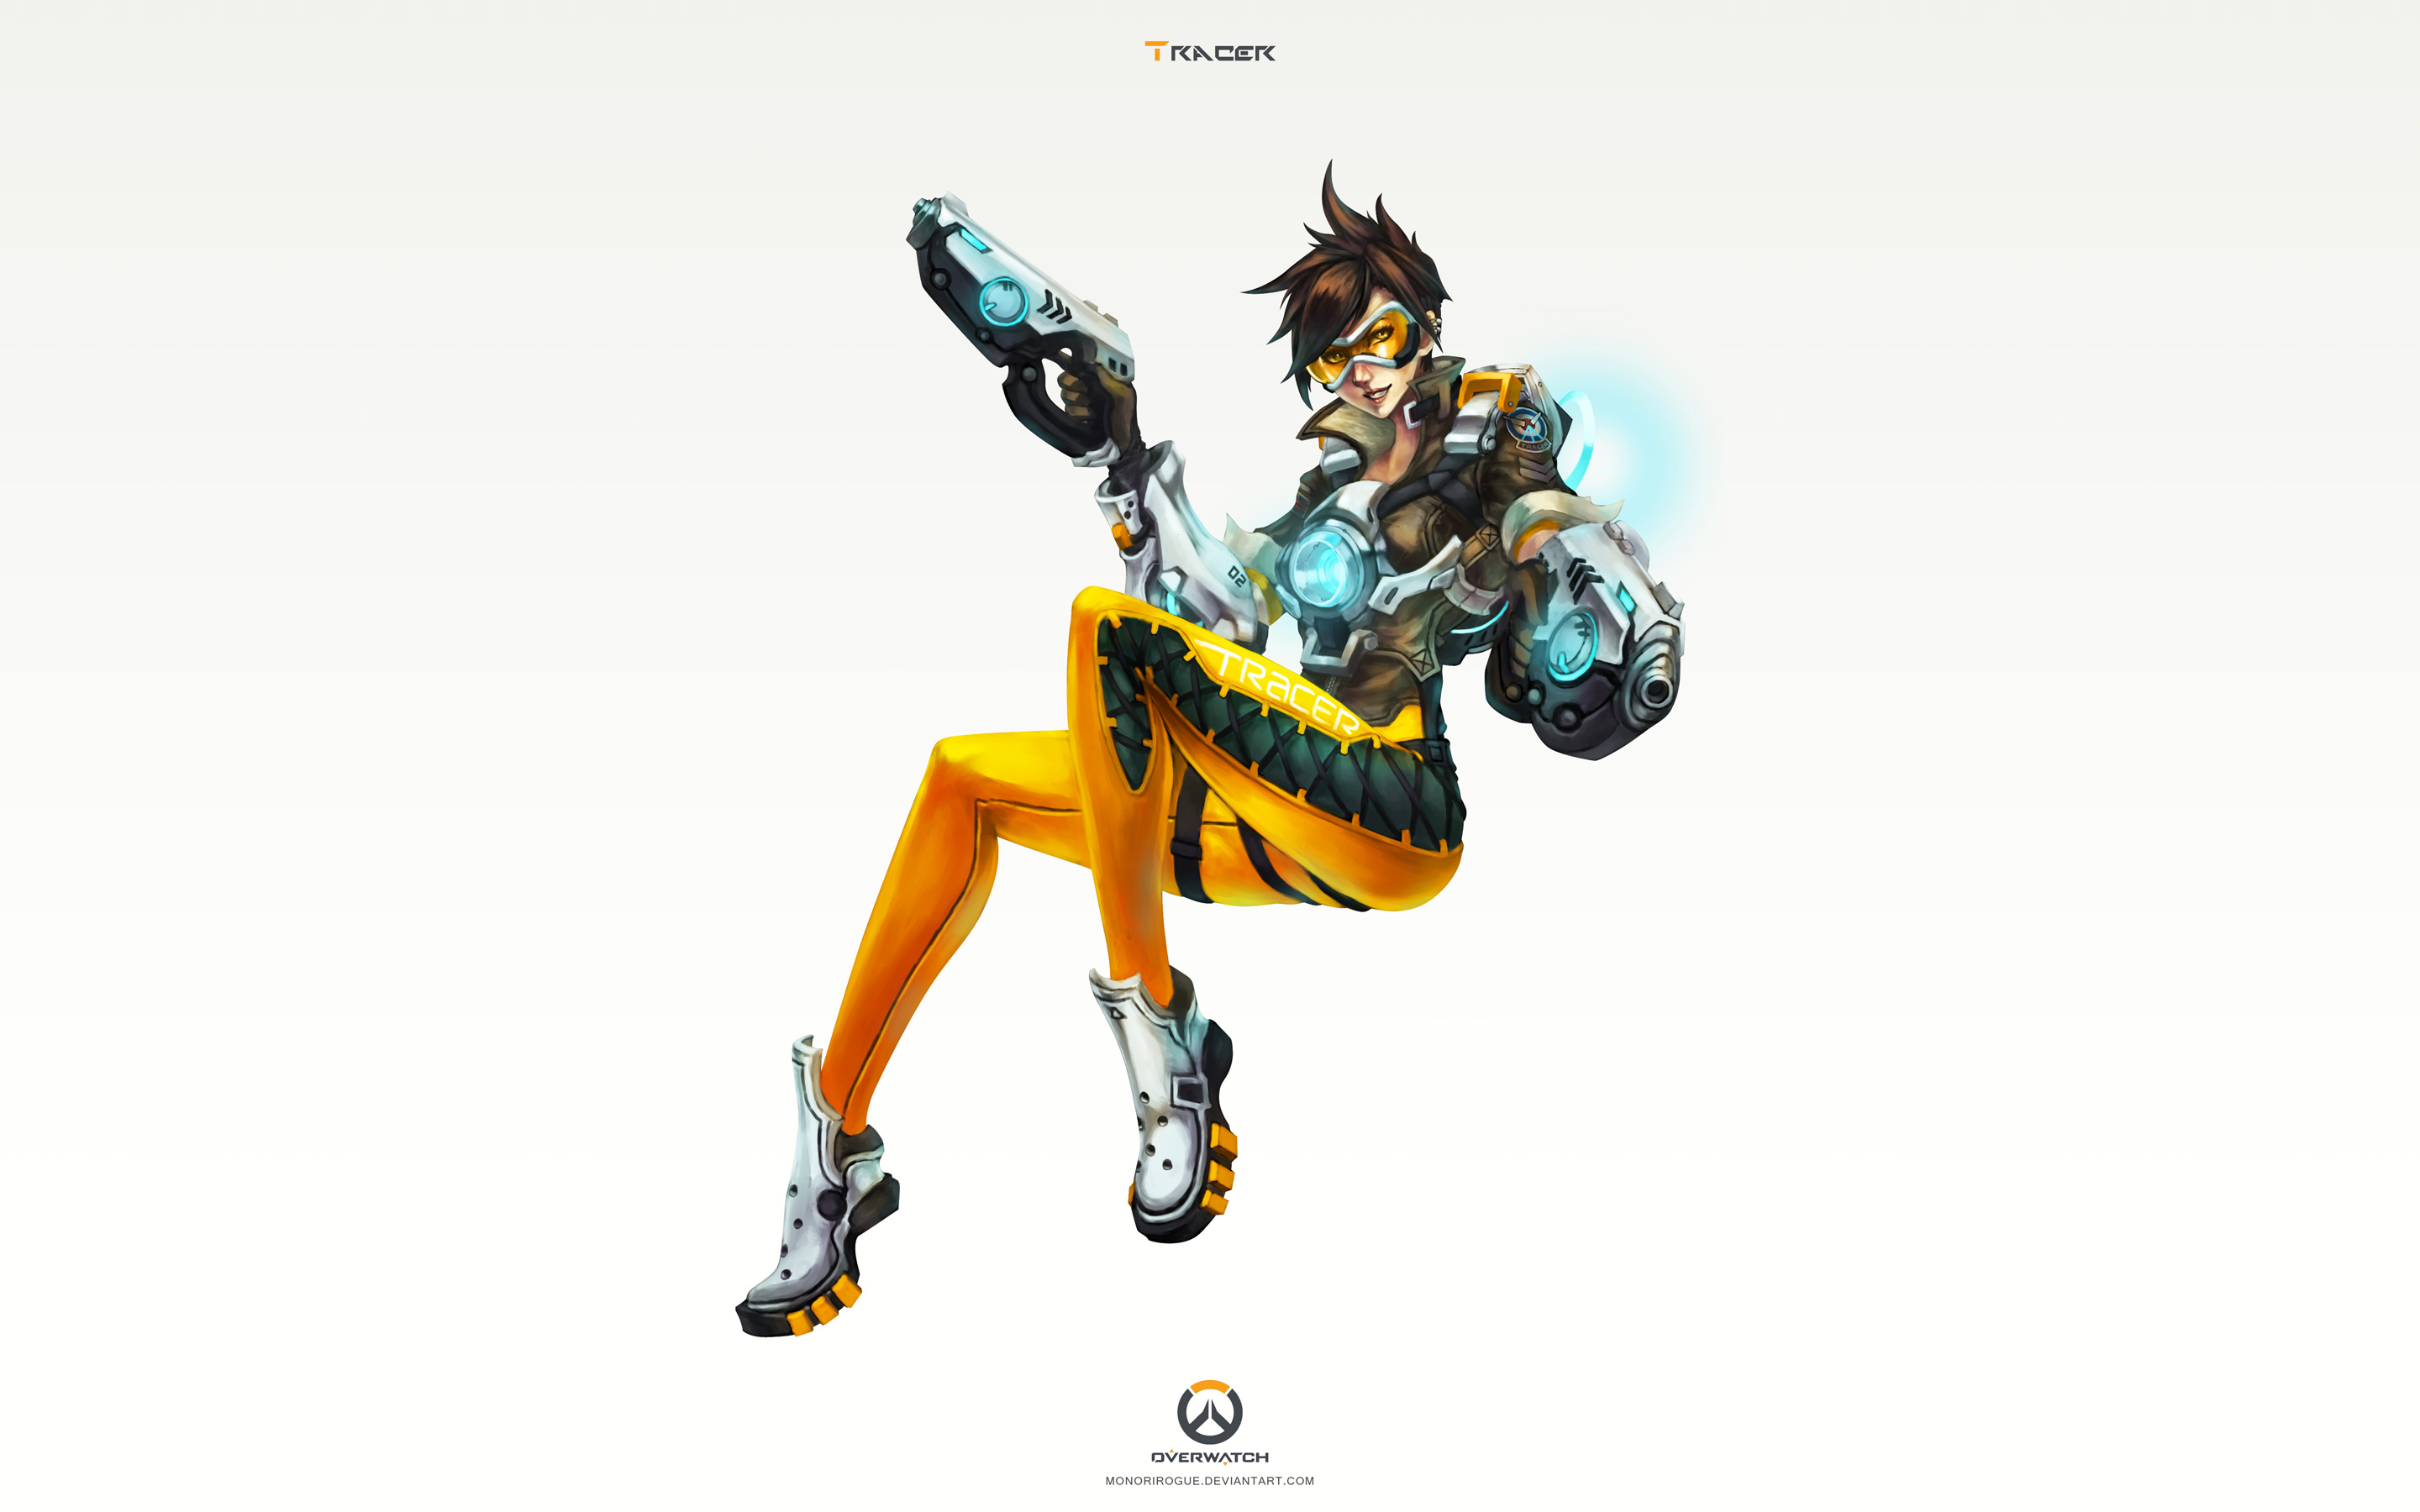 Tracer Overwatch Art 4K Wallpapers HD Wallpapers 2880x1800